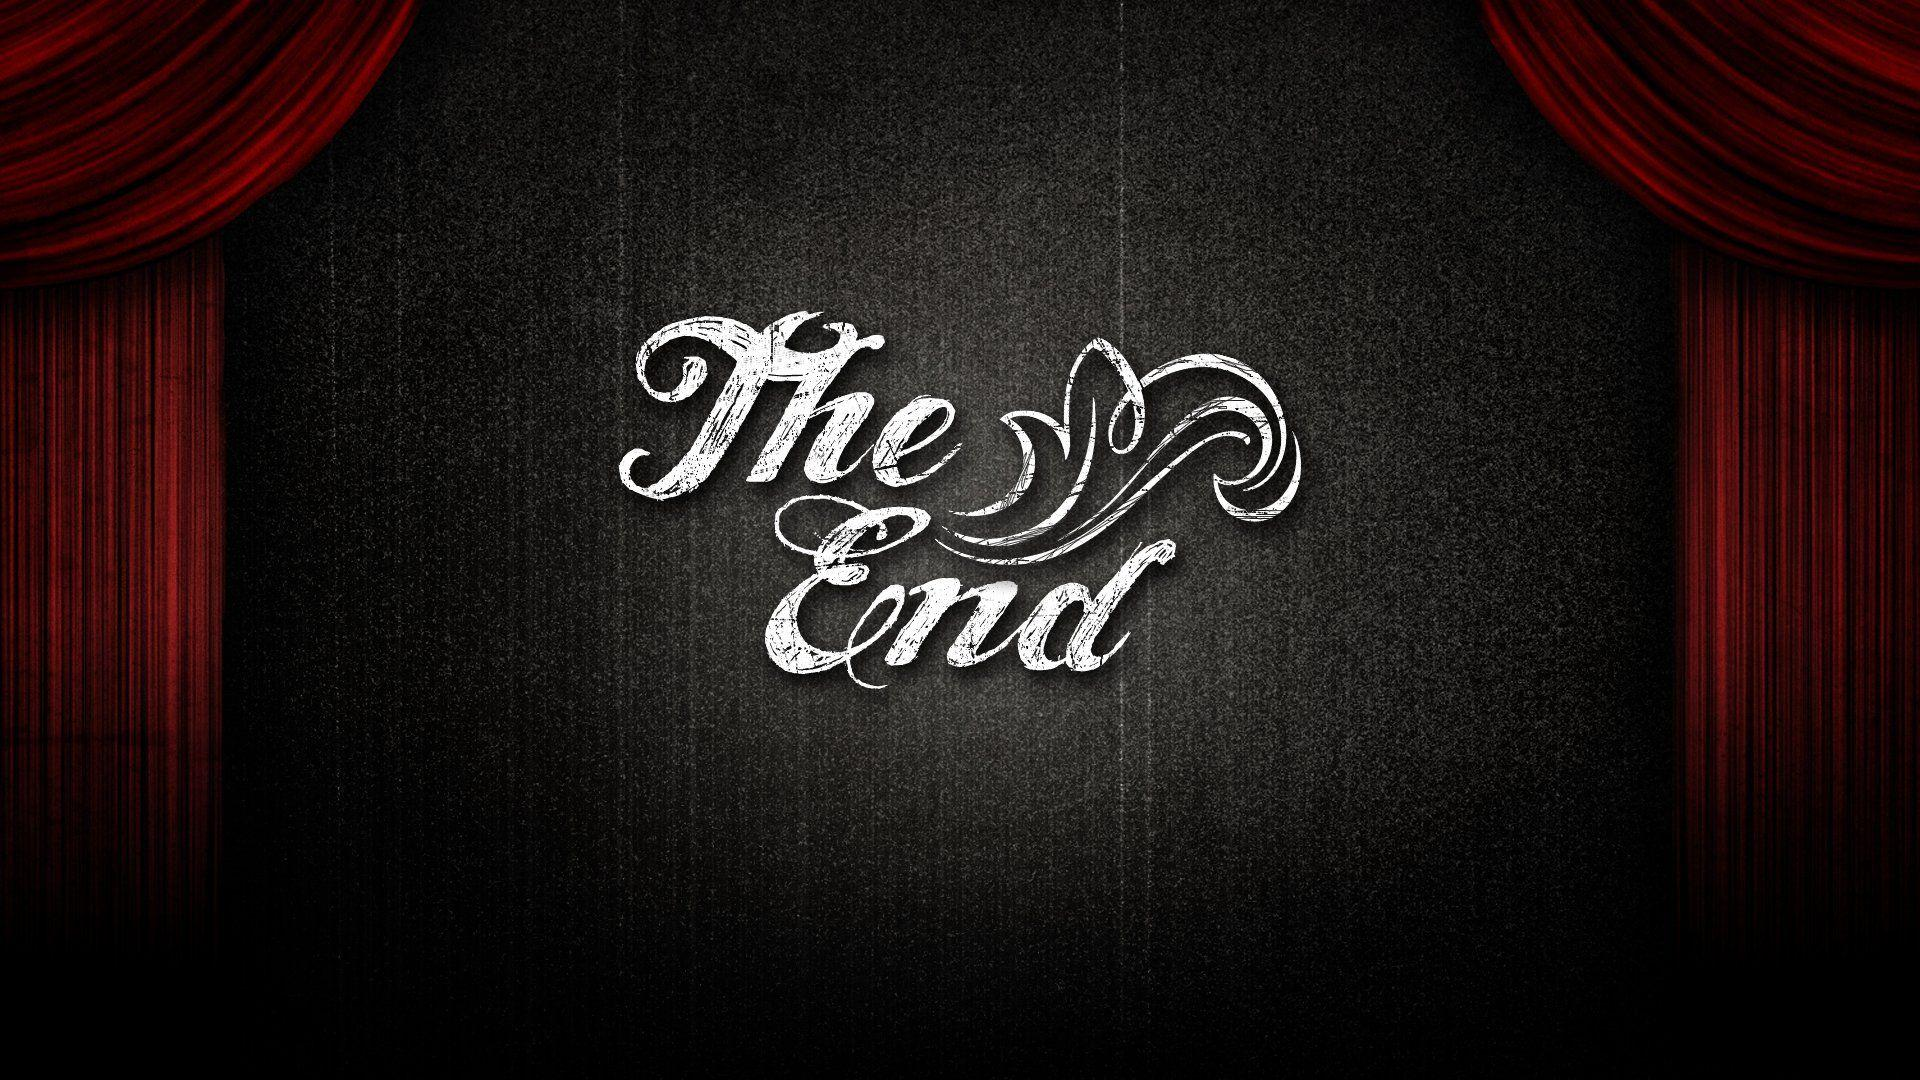 The End Wallpapers Wallpaper Cave